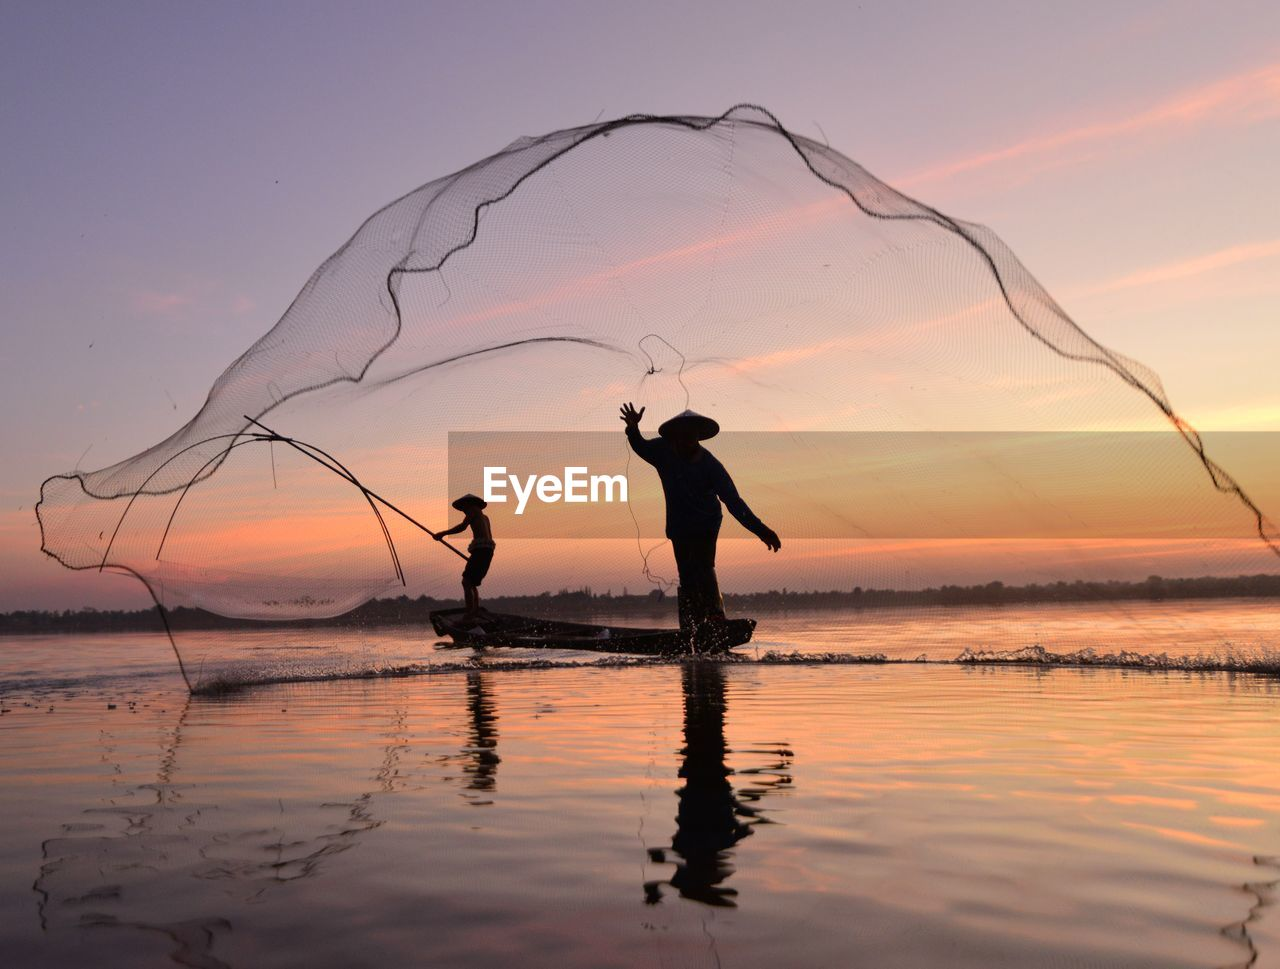 sunset, sky, water, real people, beauty in nature, scenics - nature, two people, orange color, lifestyles, silhouette, men, standing, people, land, beach, nature, reflection, leisure activity, waterfront, outdoors, fisherman, fishing industry